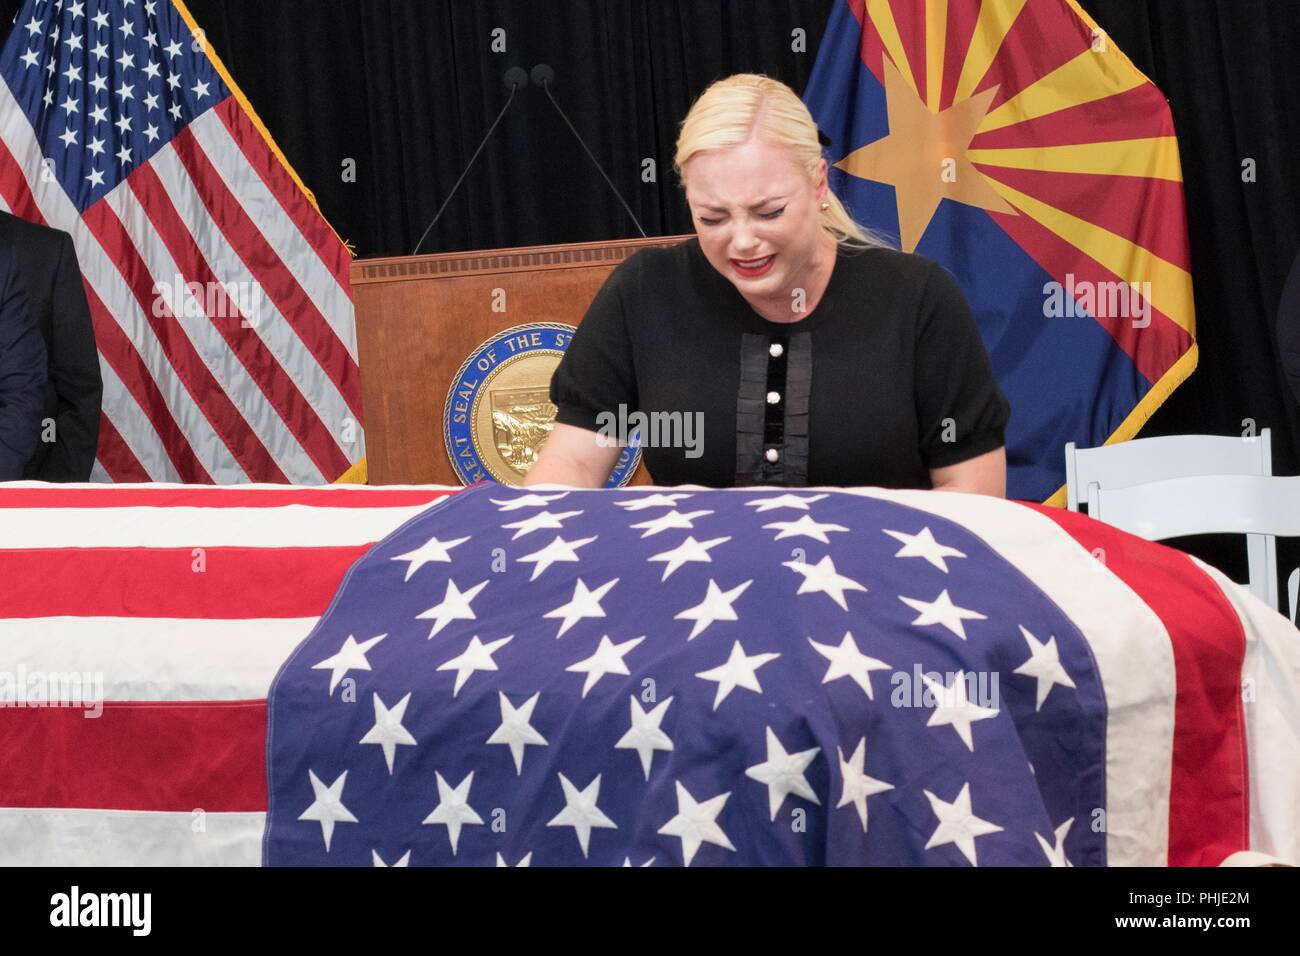 Meghan McCain, daughter of Sen. John McCain, weeps next to his flag draped casket laying in state at the Arizona State Capitol August 29, 2018 in Phoenix, Arizona. The former senator's remains will lie in state in the U.S. Capitol Rotunda before burial at the U.S. Naval Academy. - Stock Image